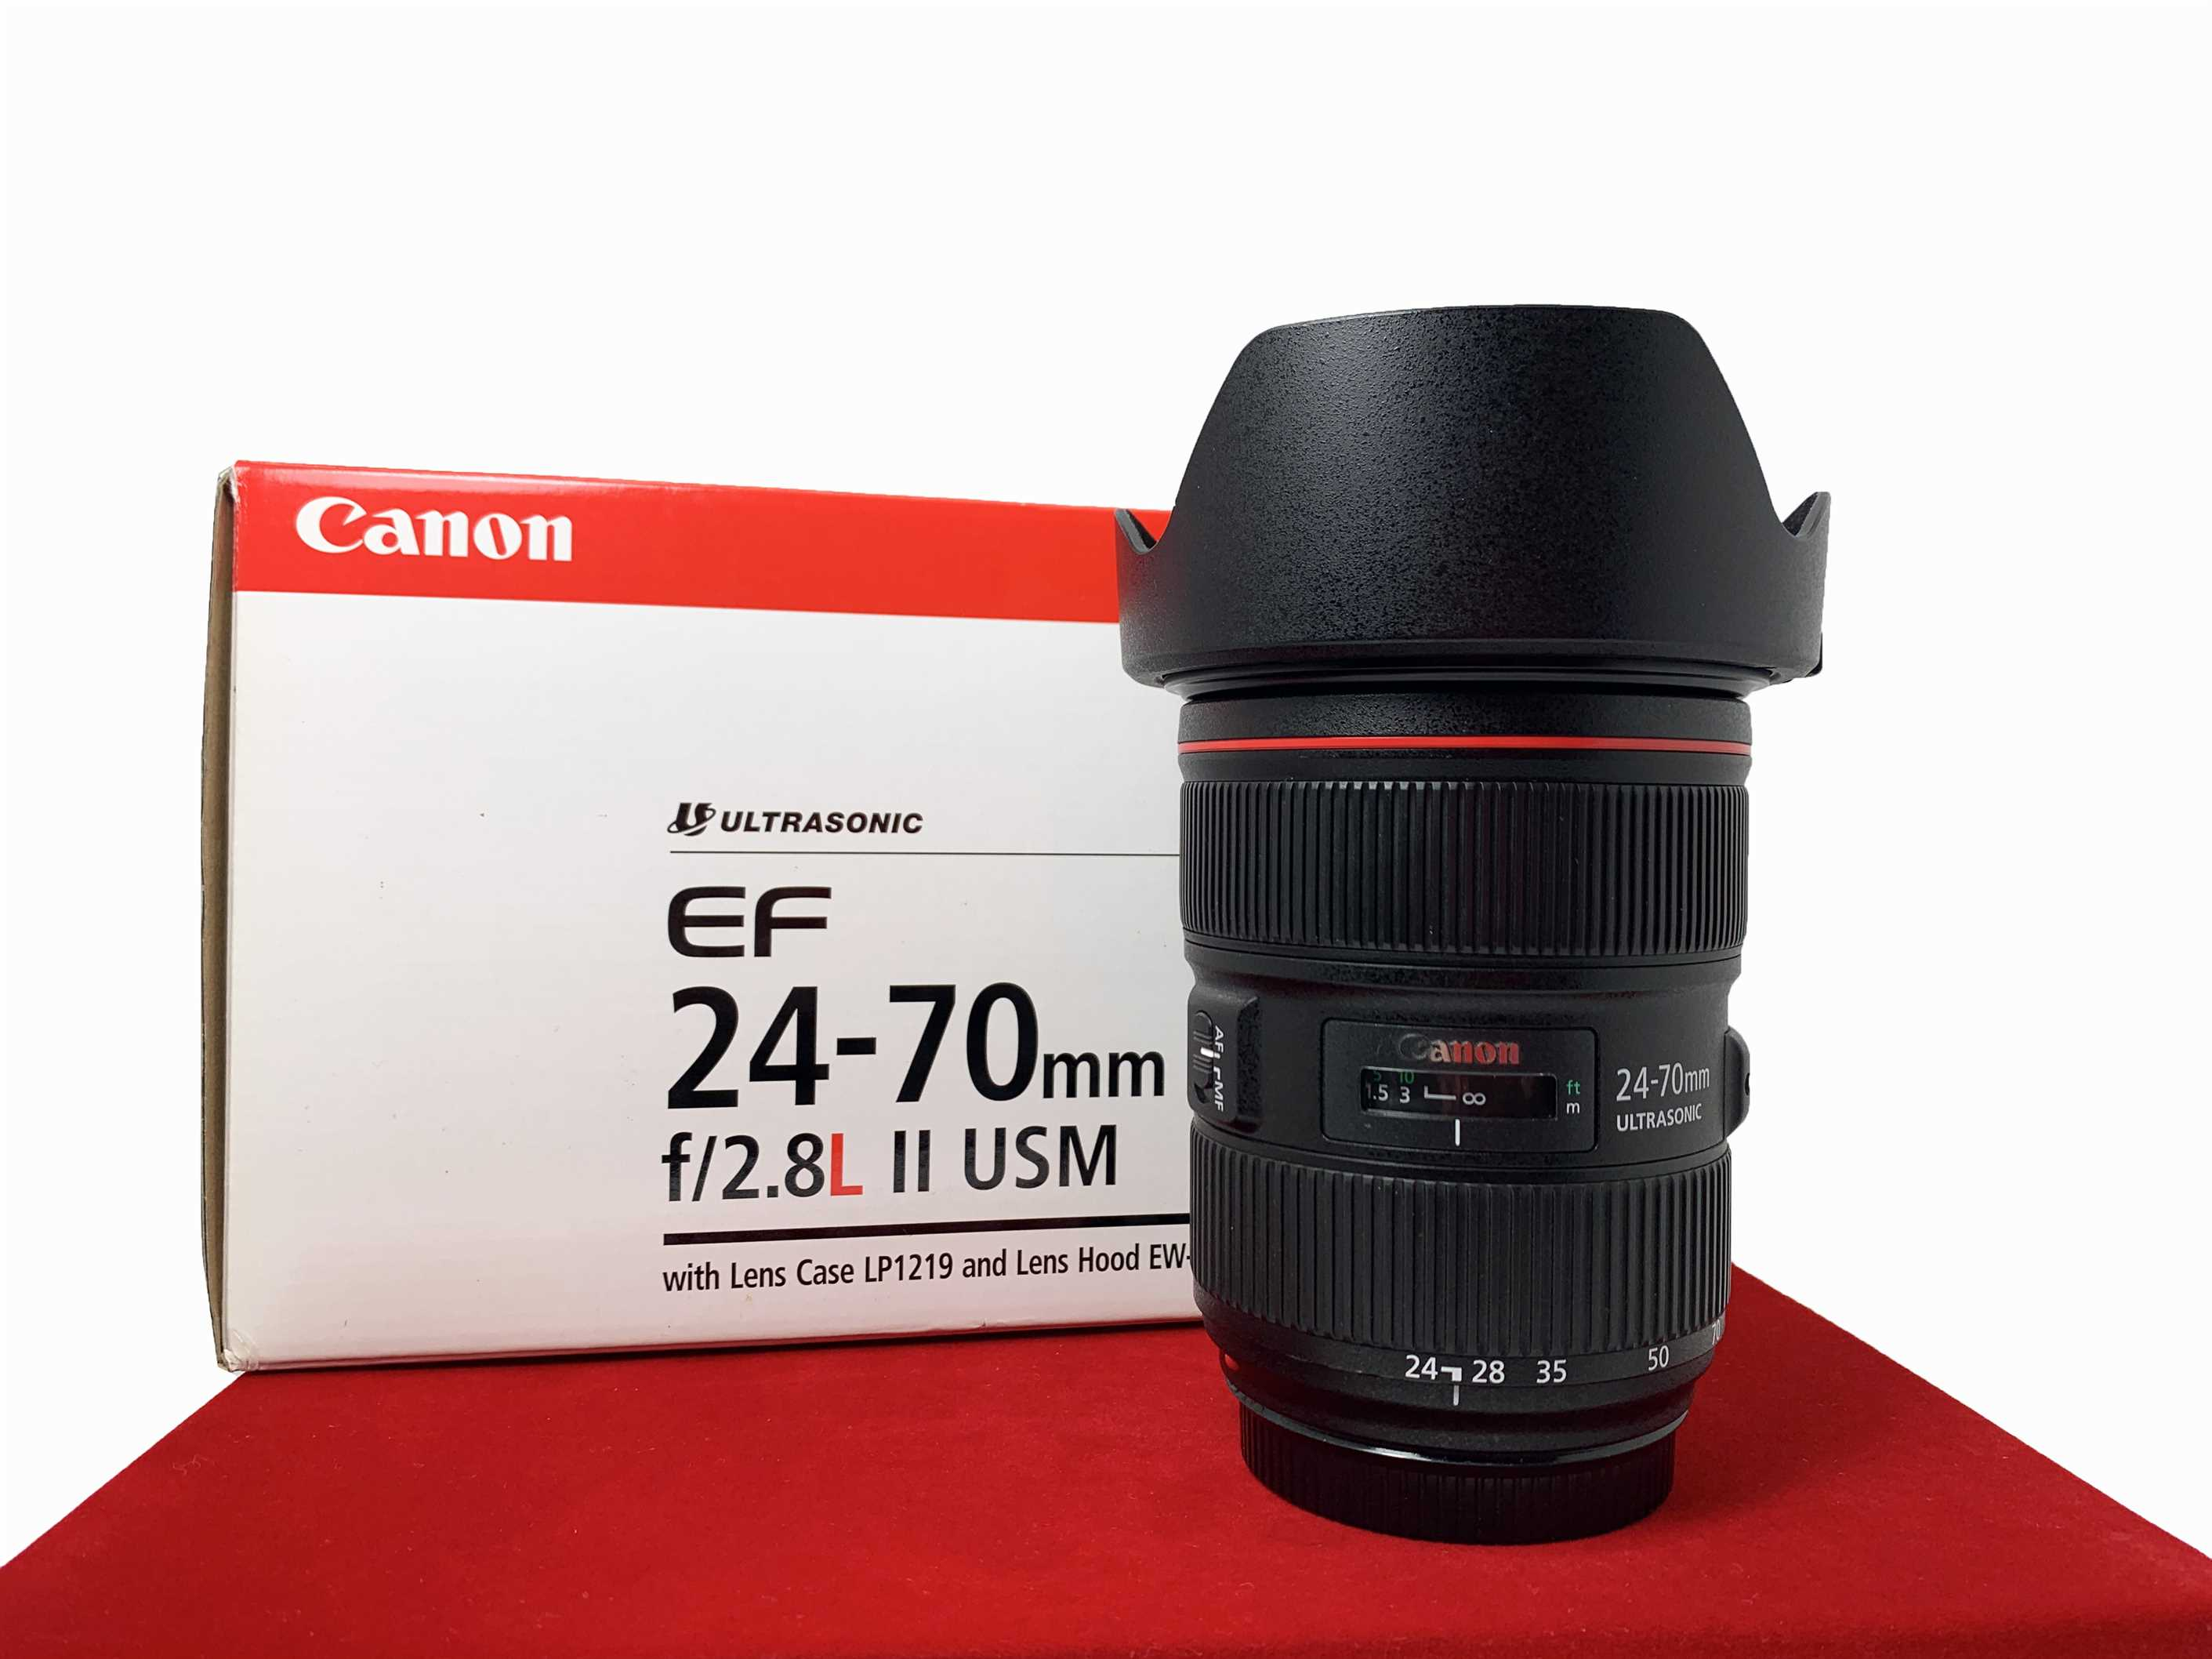 [USED-PJ33] Canon 24-70mm F2.8 L II EF USM LENS,95% Like New Condition (S/N:9200006687)